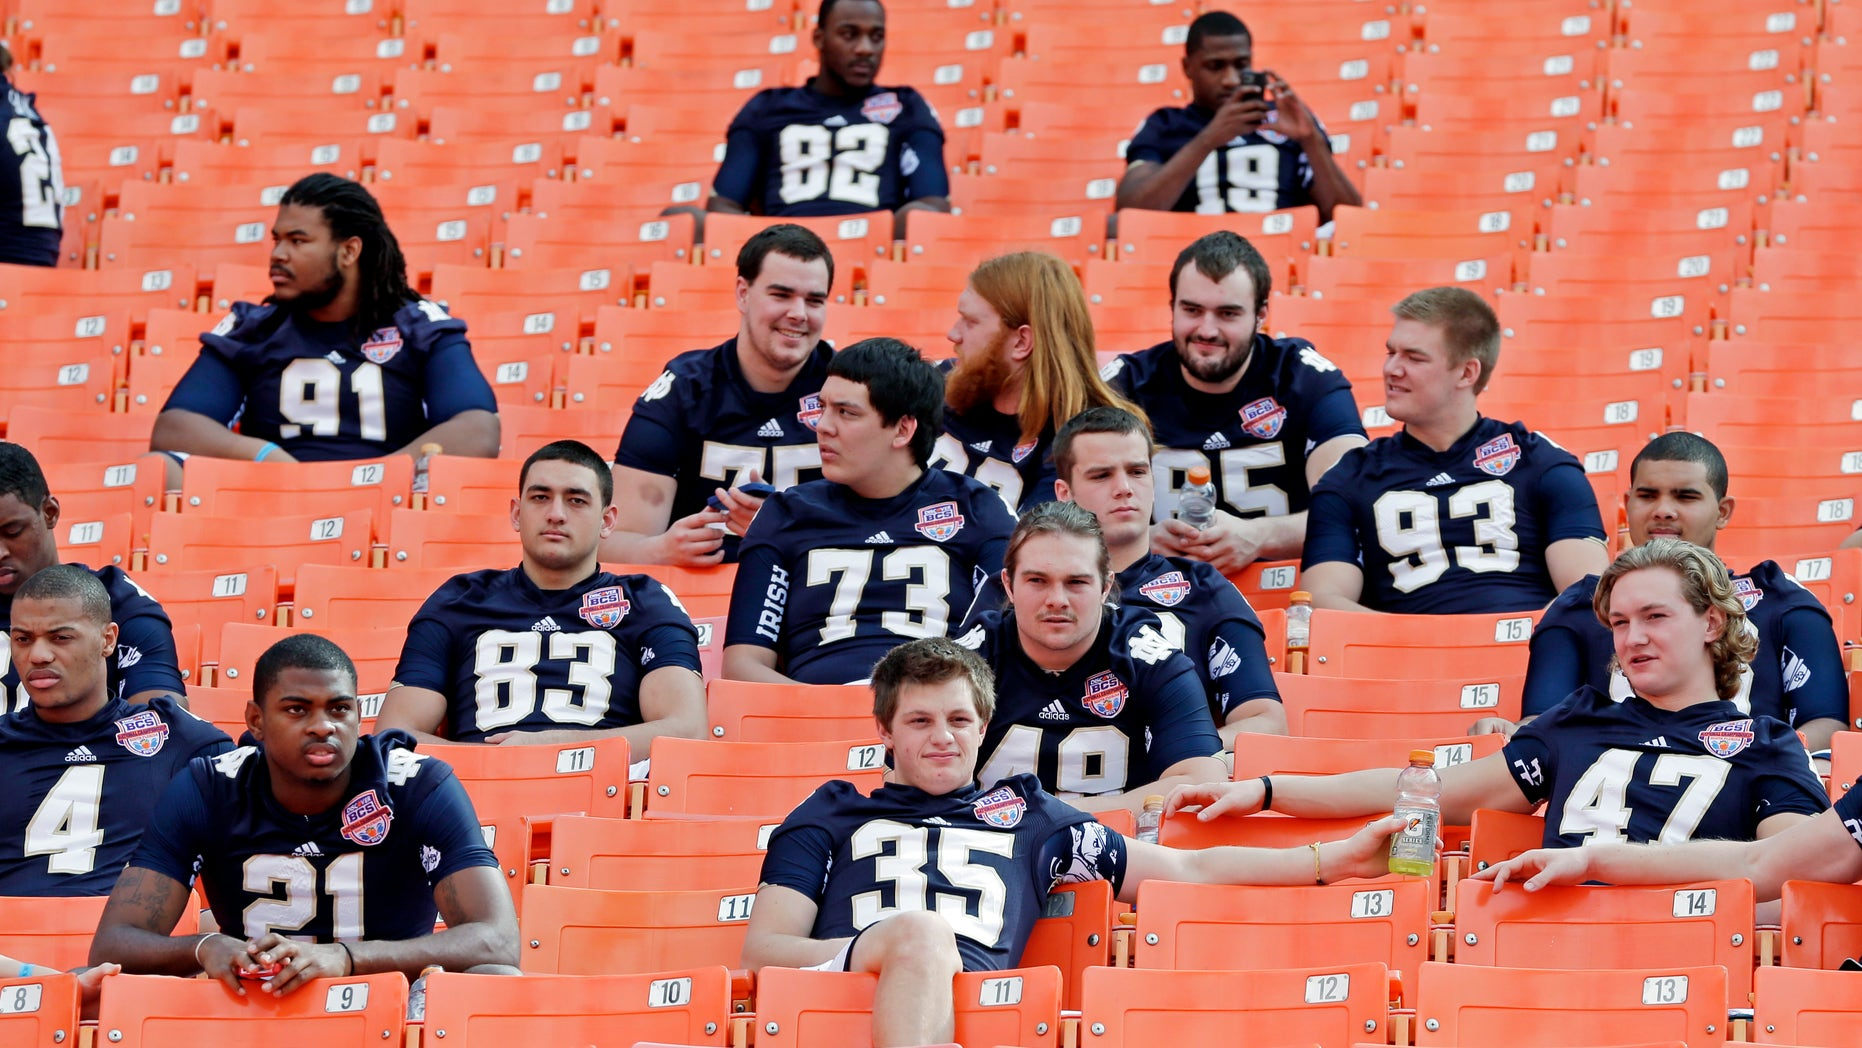 Notre Dame players watch from the stands during Media Day for the BCS National Championship college football game Saturday, Jan. 5, 2013, in Miami. Notre Dame faces Alabama in Monday's championship game.(AP Photo/Chris O'Meara)